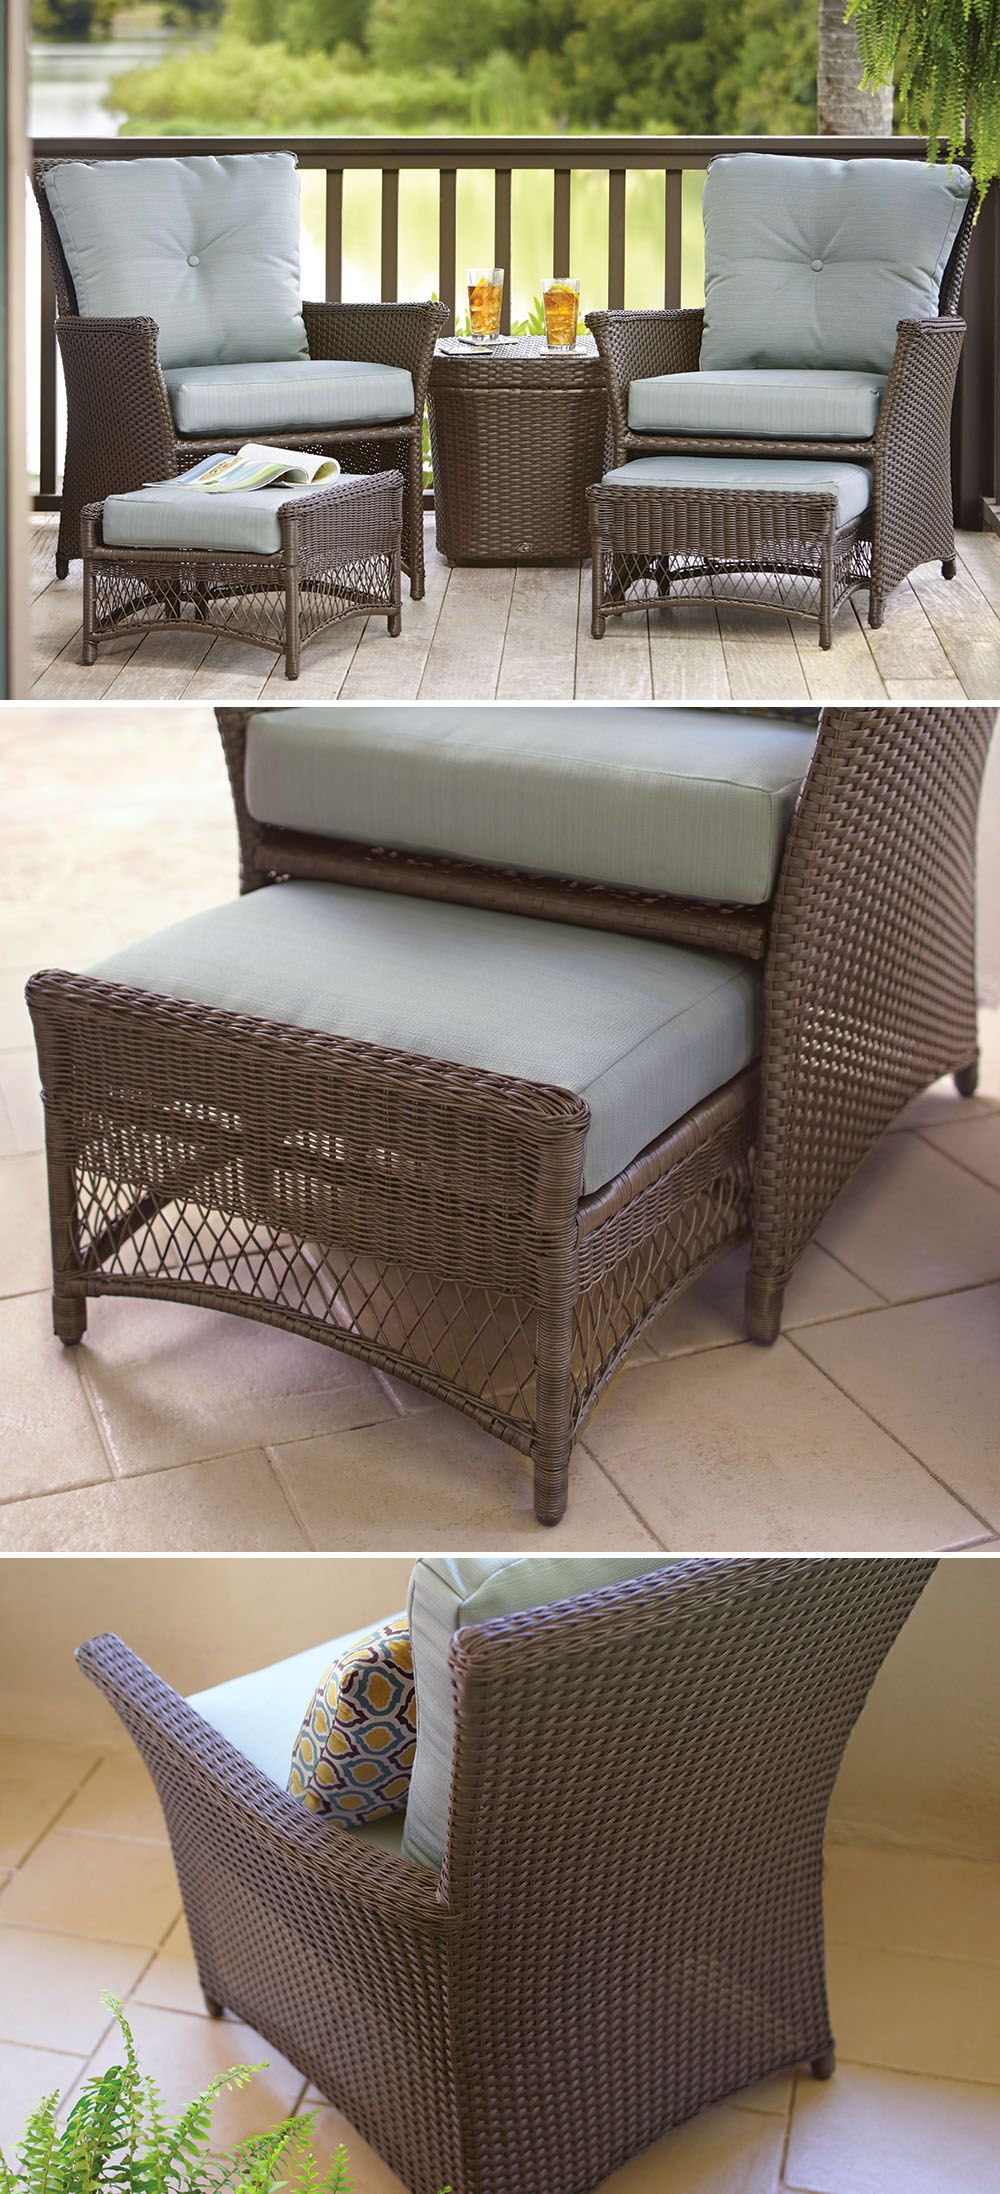 hidden epic of chair ottomans size home with for ottoman set photos improvement full patio images inspirational outdoor